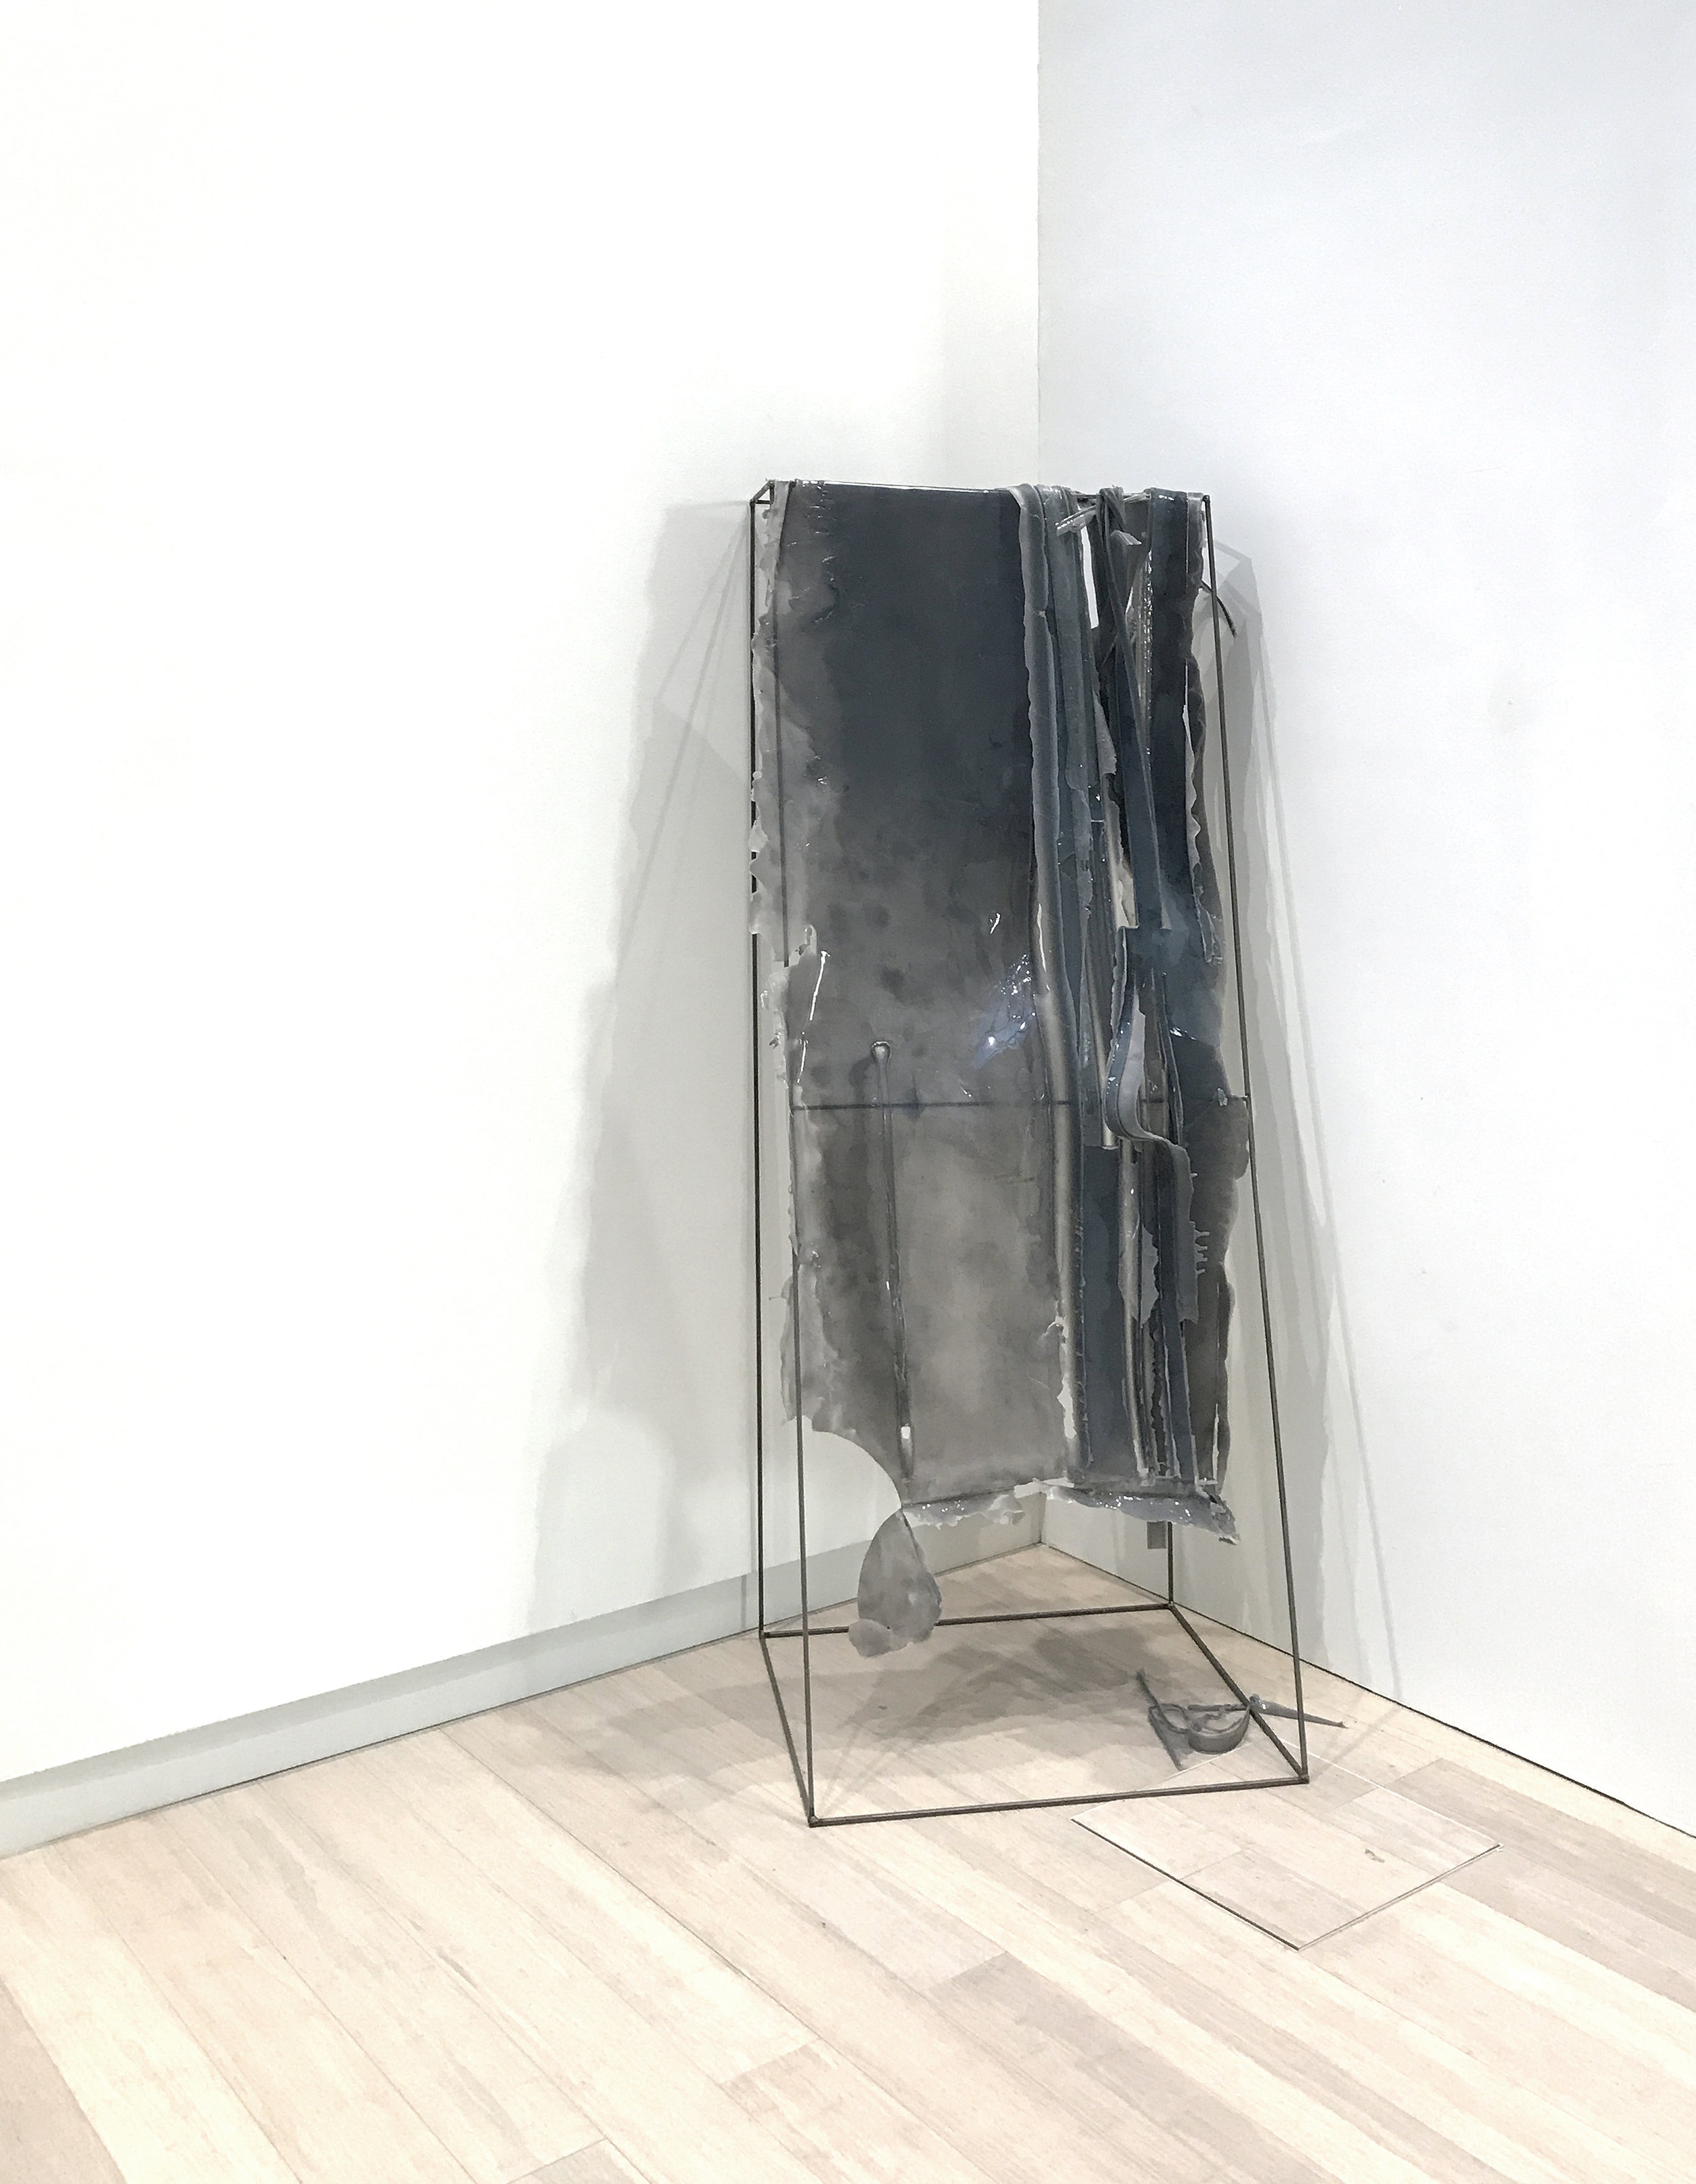 Michal Alpern  Raving & Melancholy , 2017 (one element) pigmented rubber, pigmented silicone, metal rods, pigmented resin size variable to installation